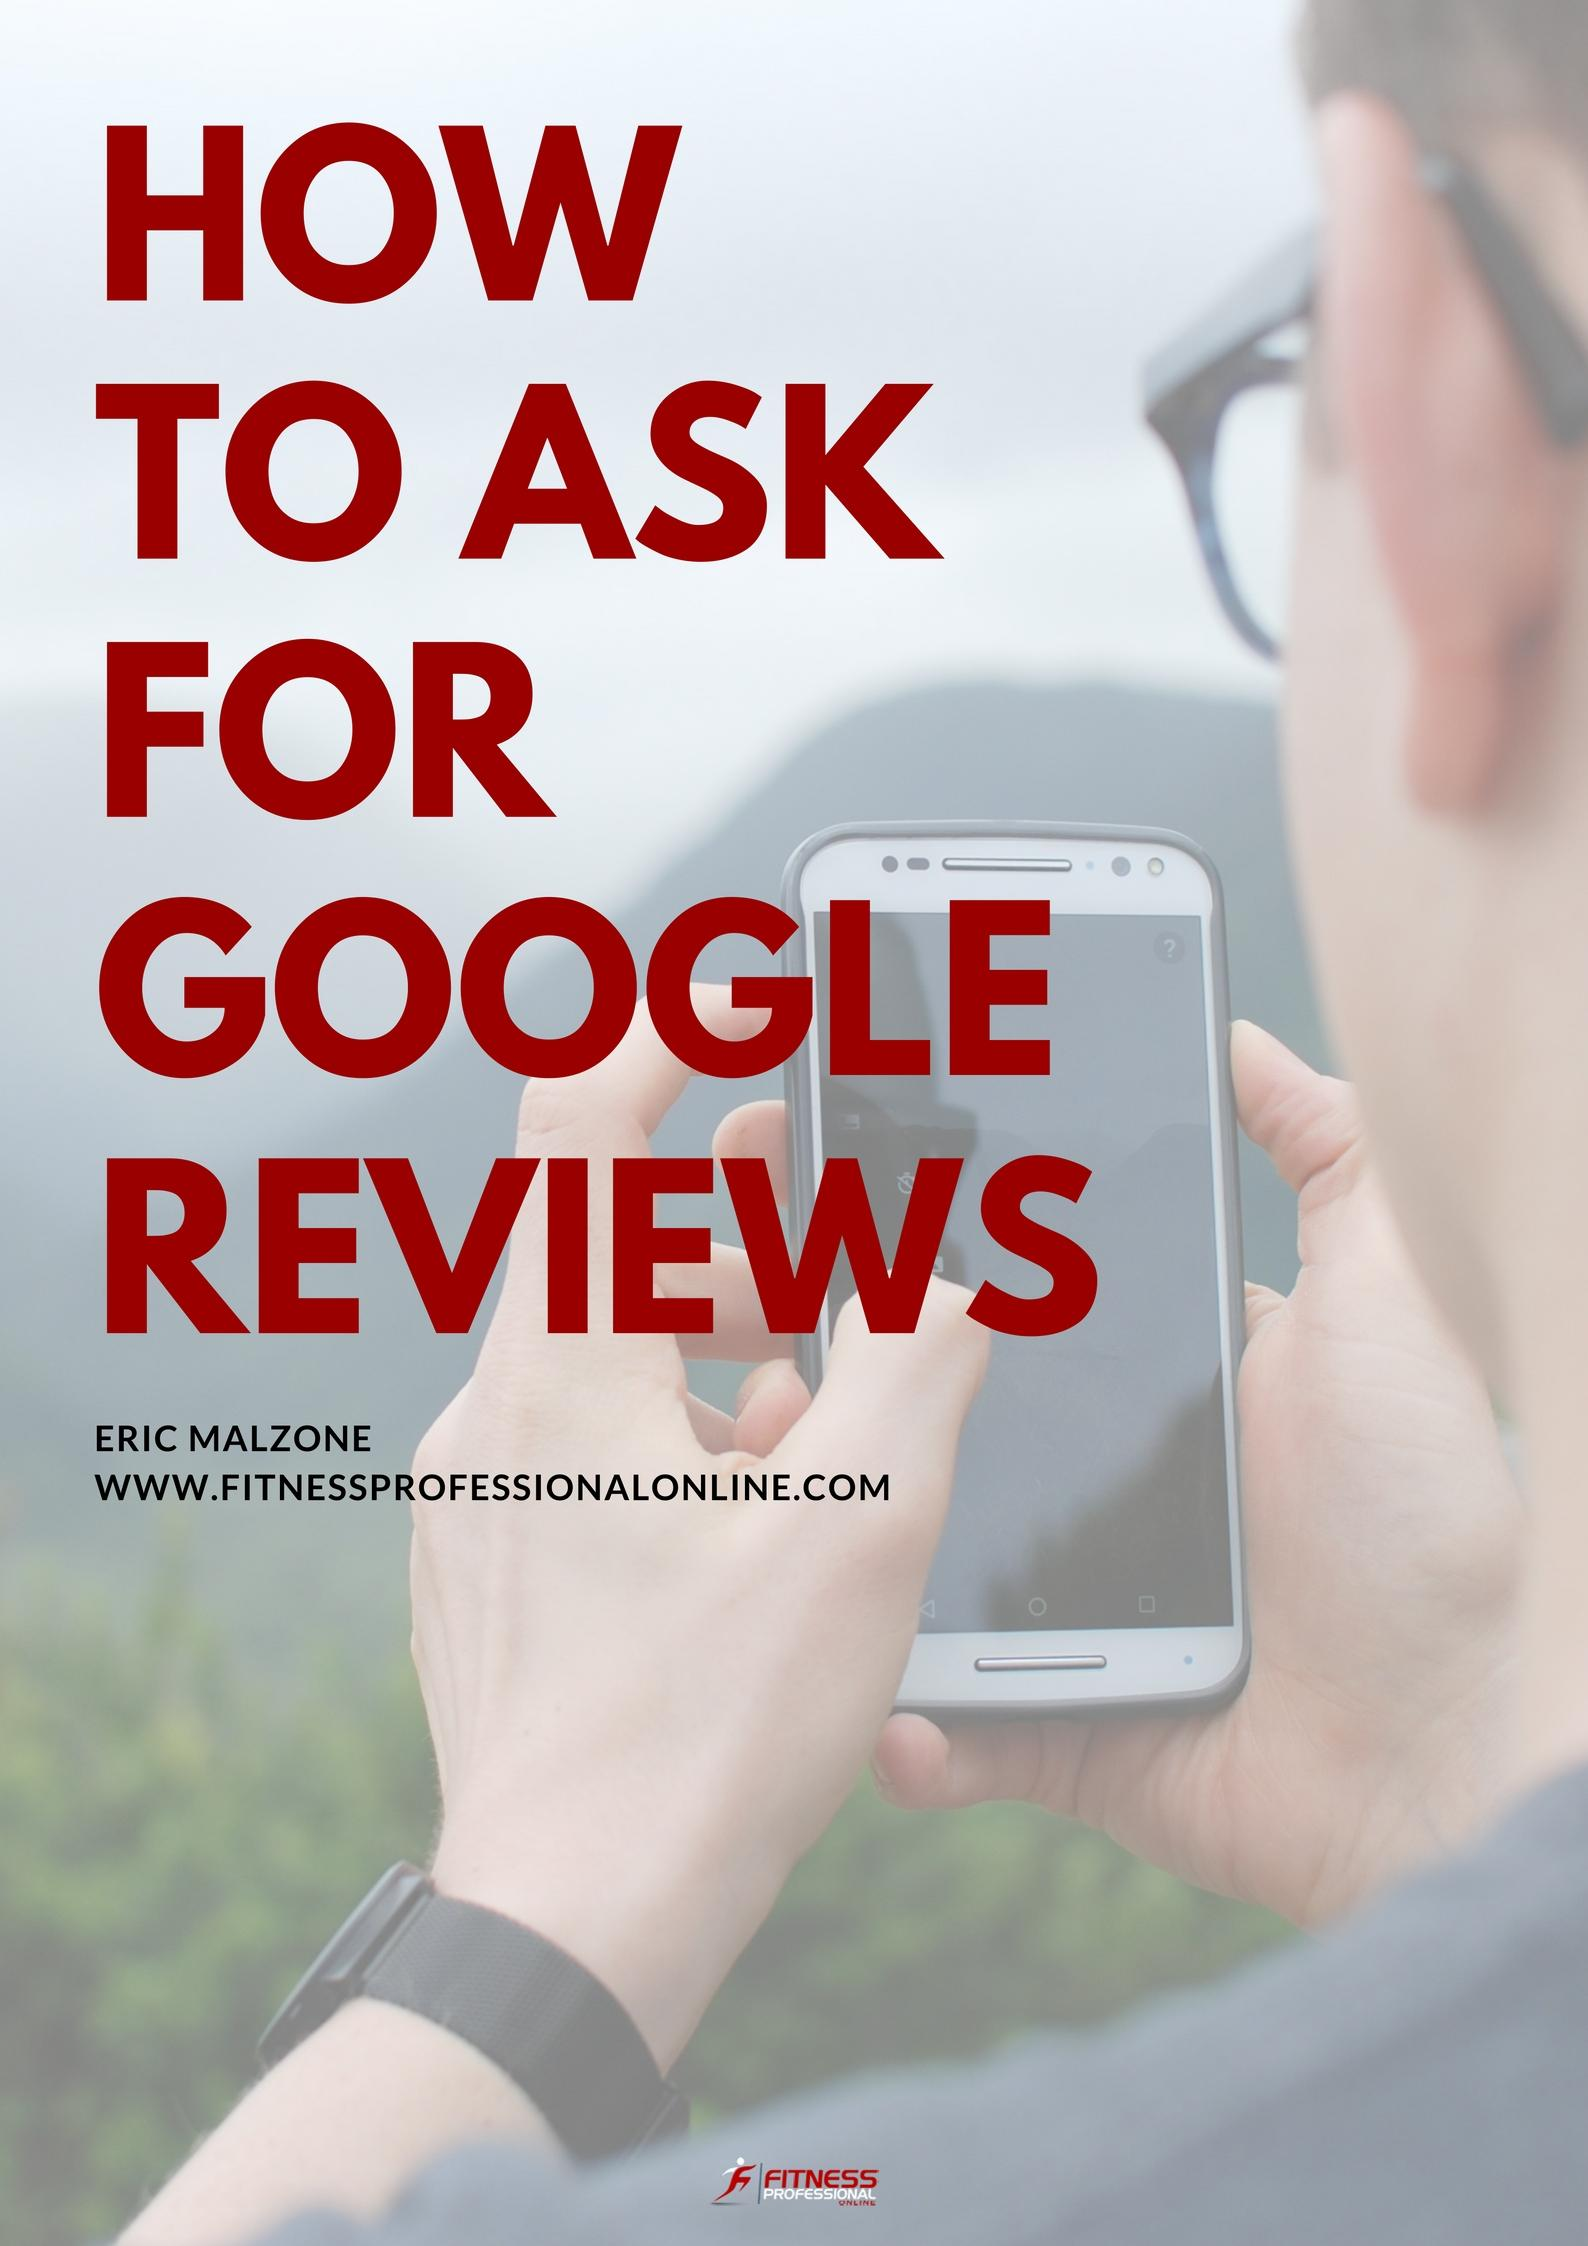 88% of consumers trust online reviews as much as personal recommendations.